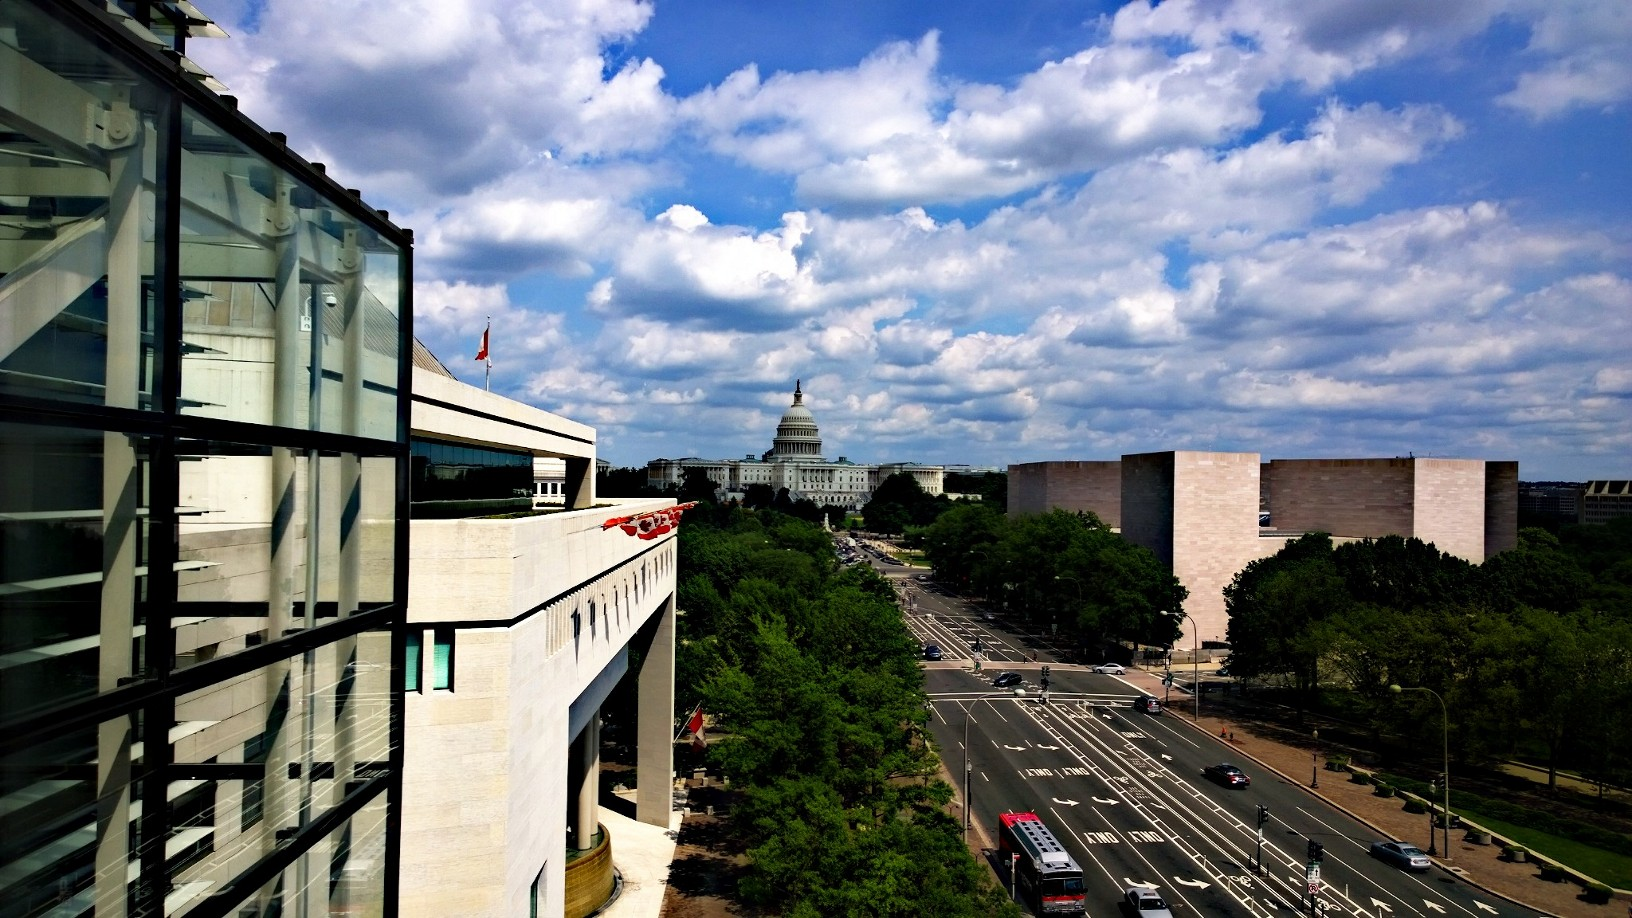 Views of the Capitol